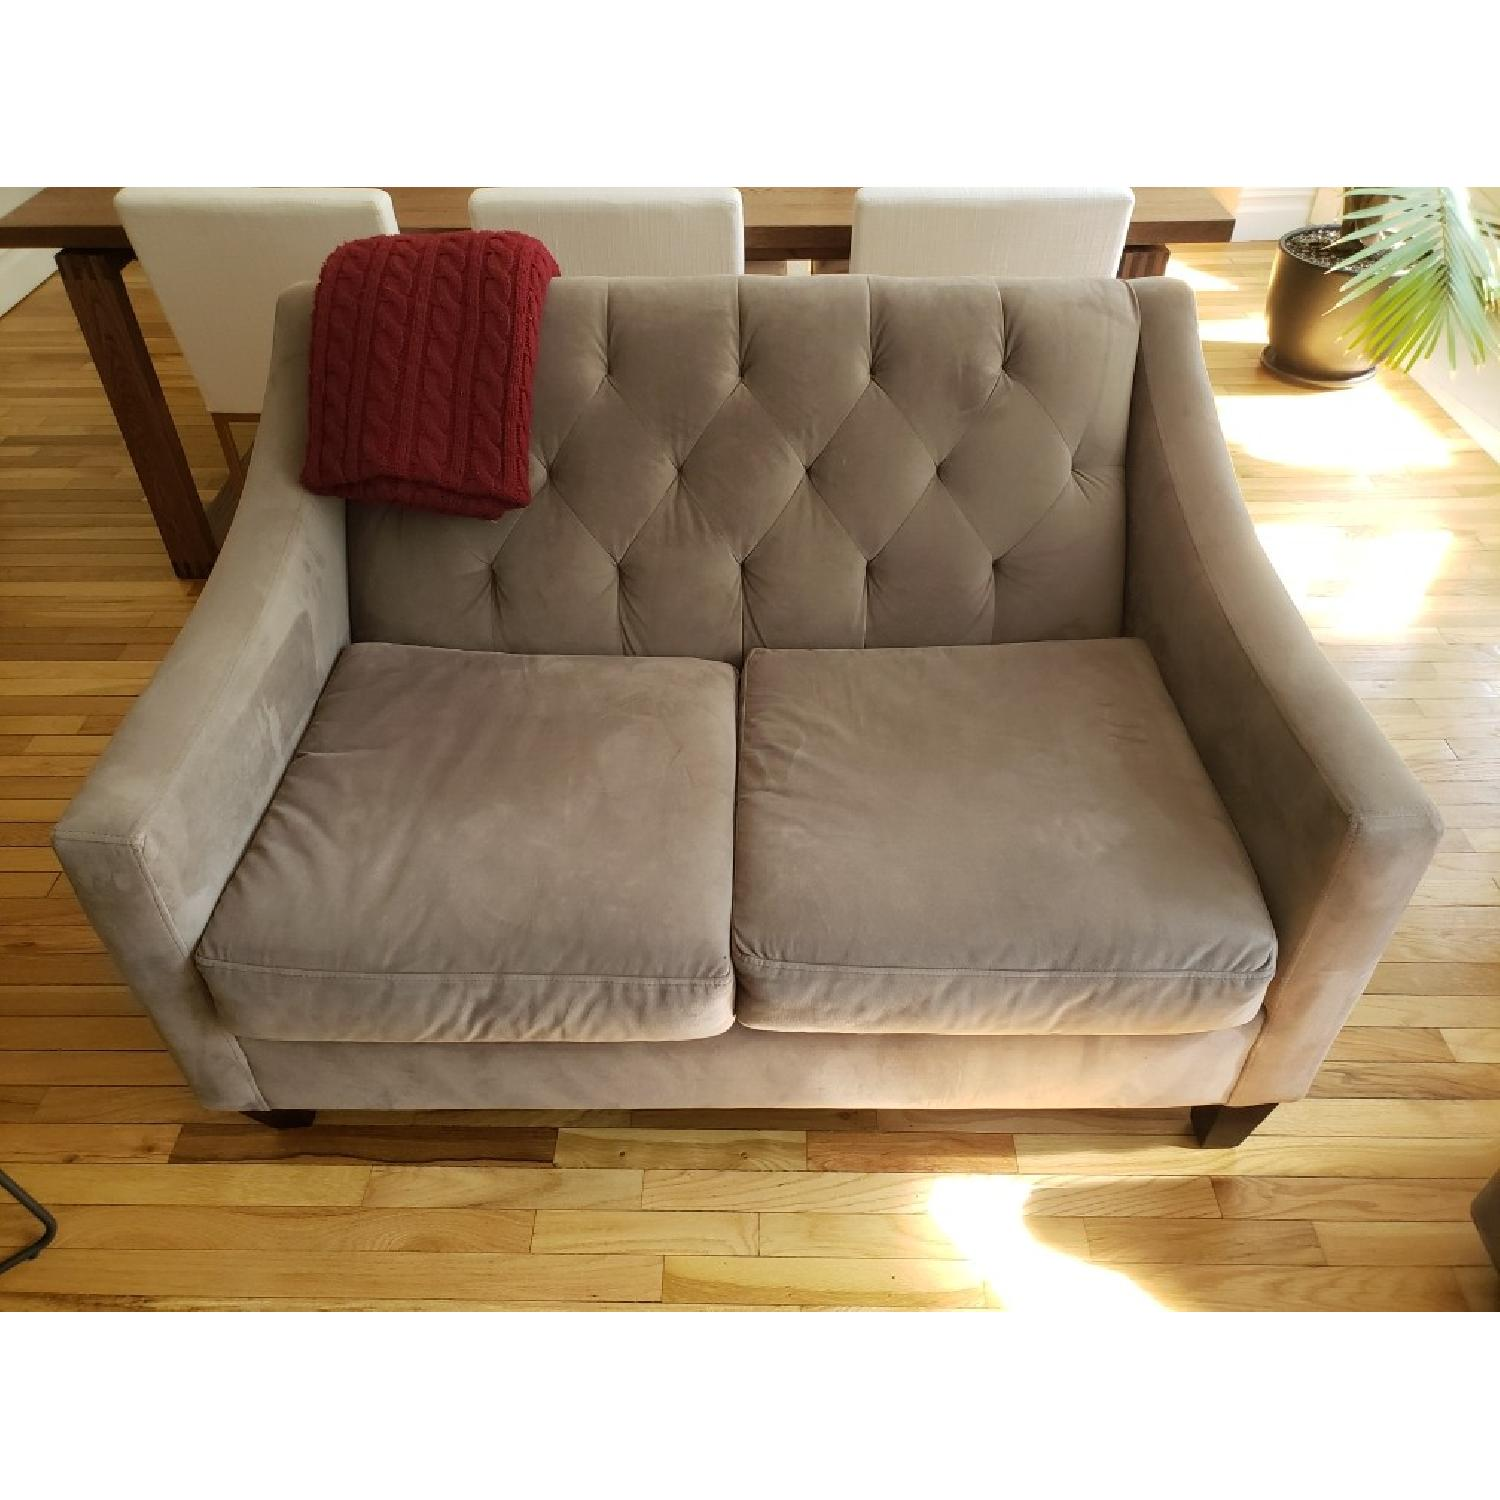 Macy's Velvet Tufted Loveseat in Granite - image-5